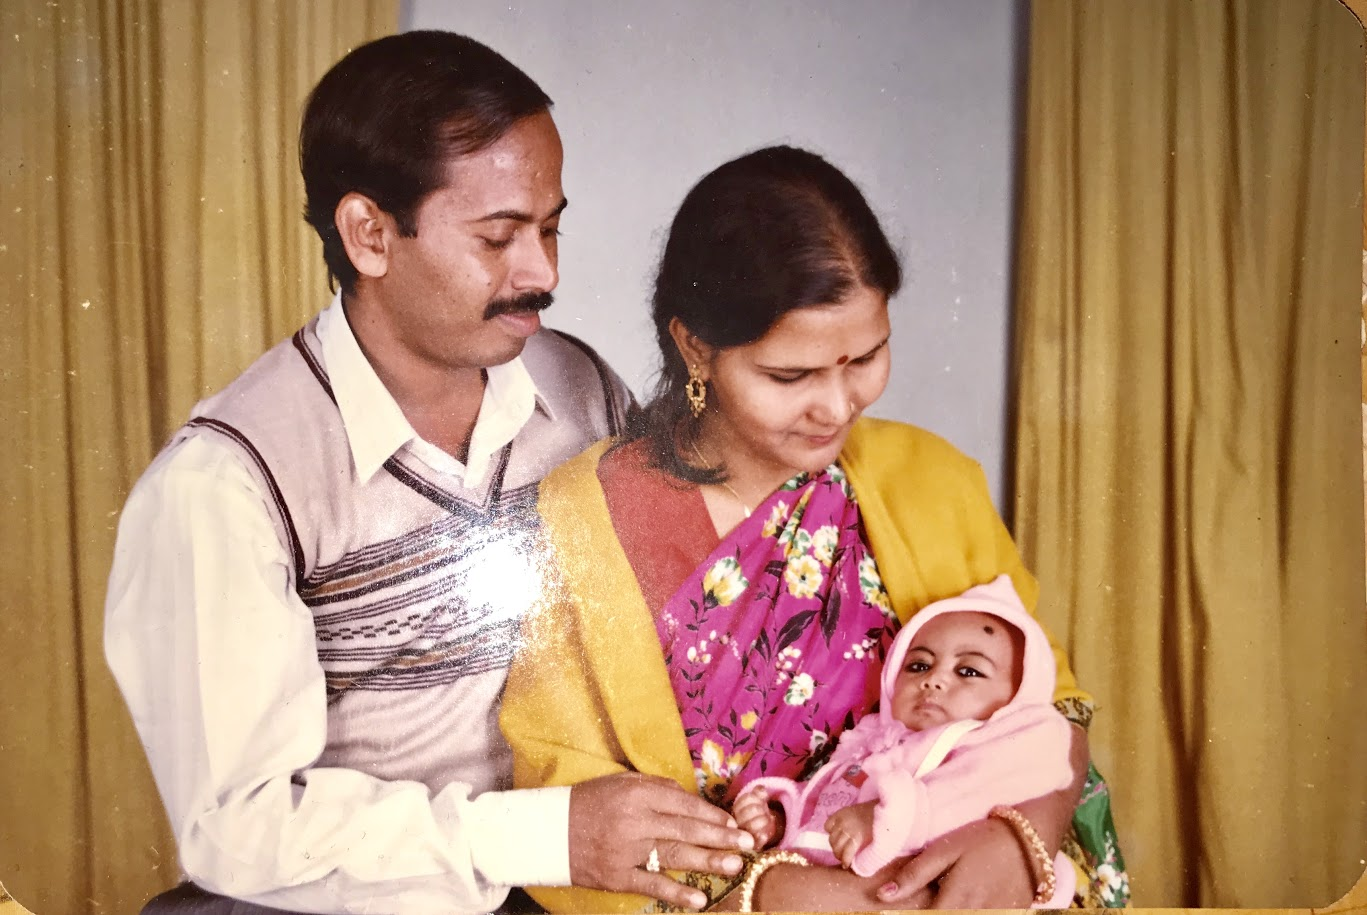 Pictured: Baby Sanjida with her parents.